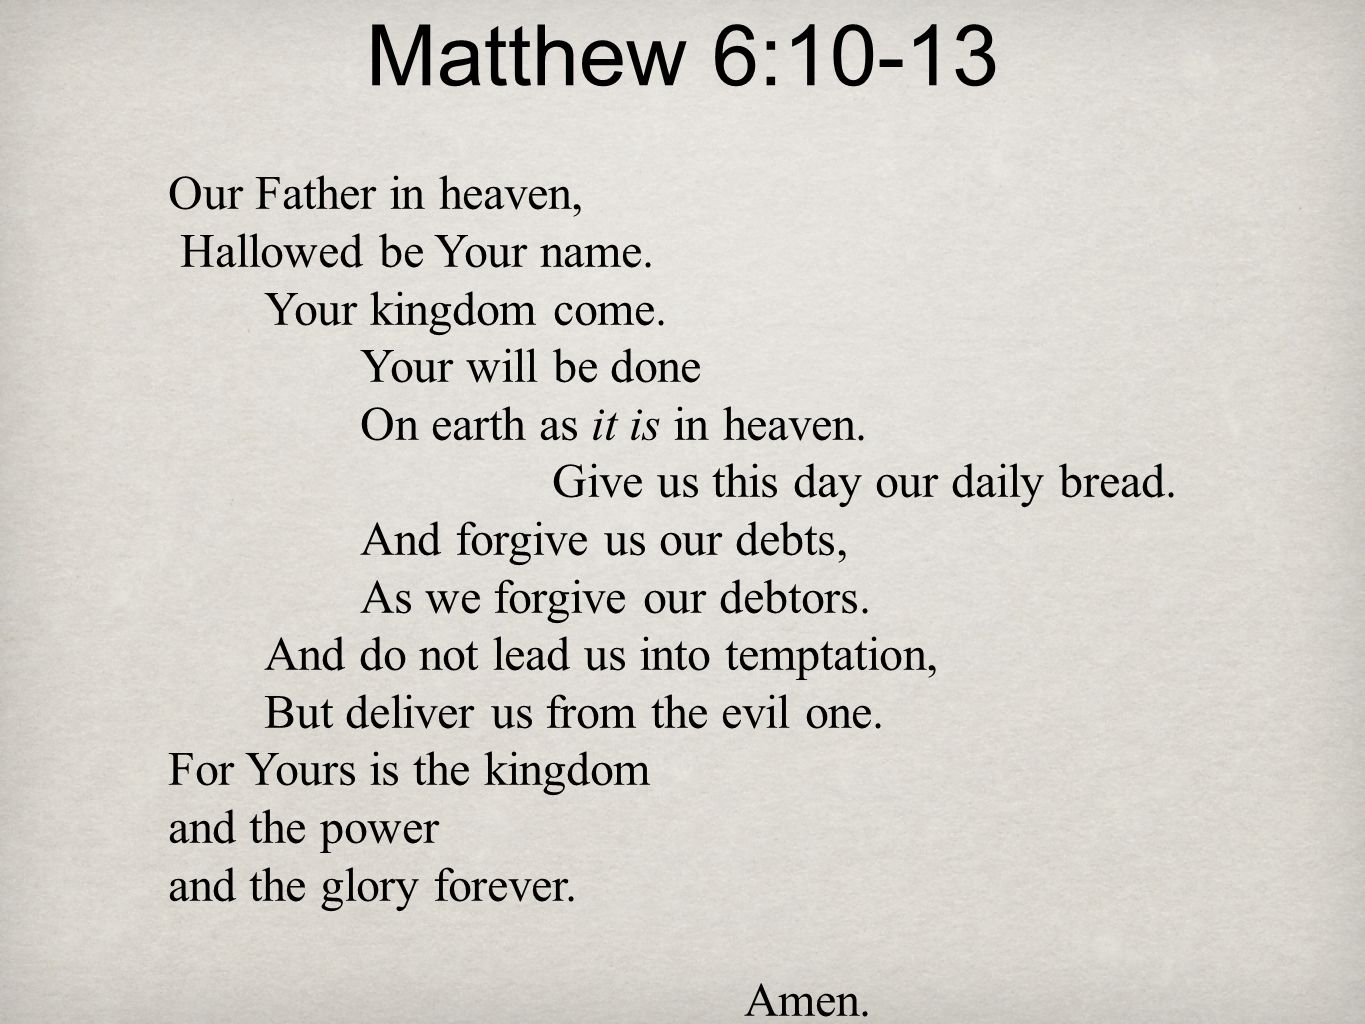 Matthew 6:10-13 Our Father in heaven, Hallowed be Your name.